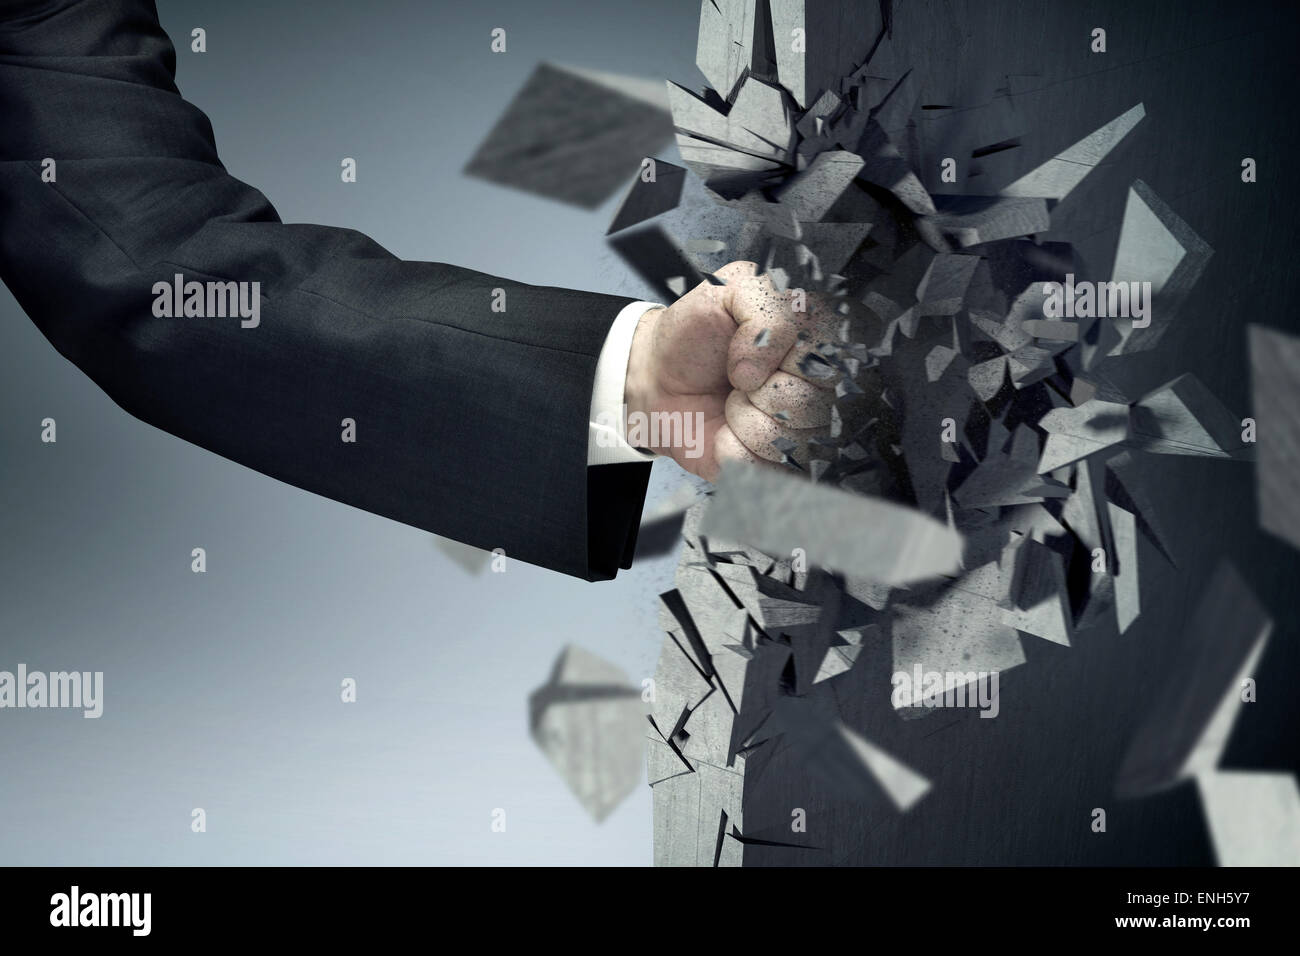 The man with a powerful fist - Stock Image